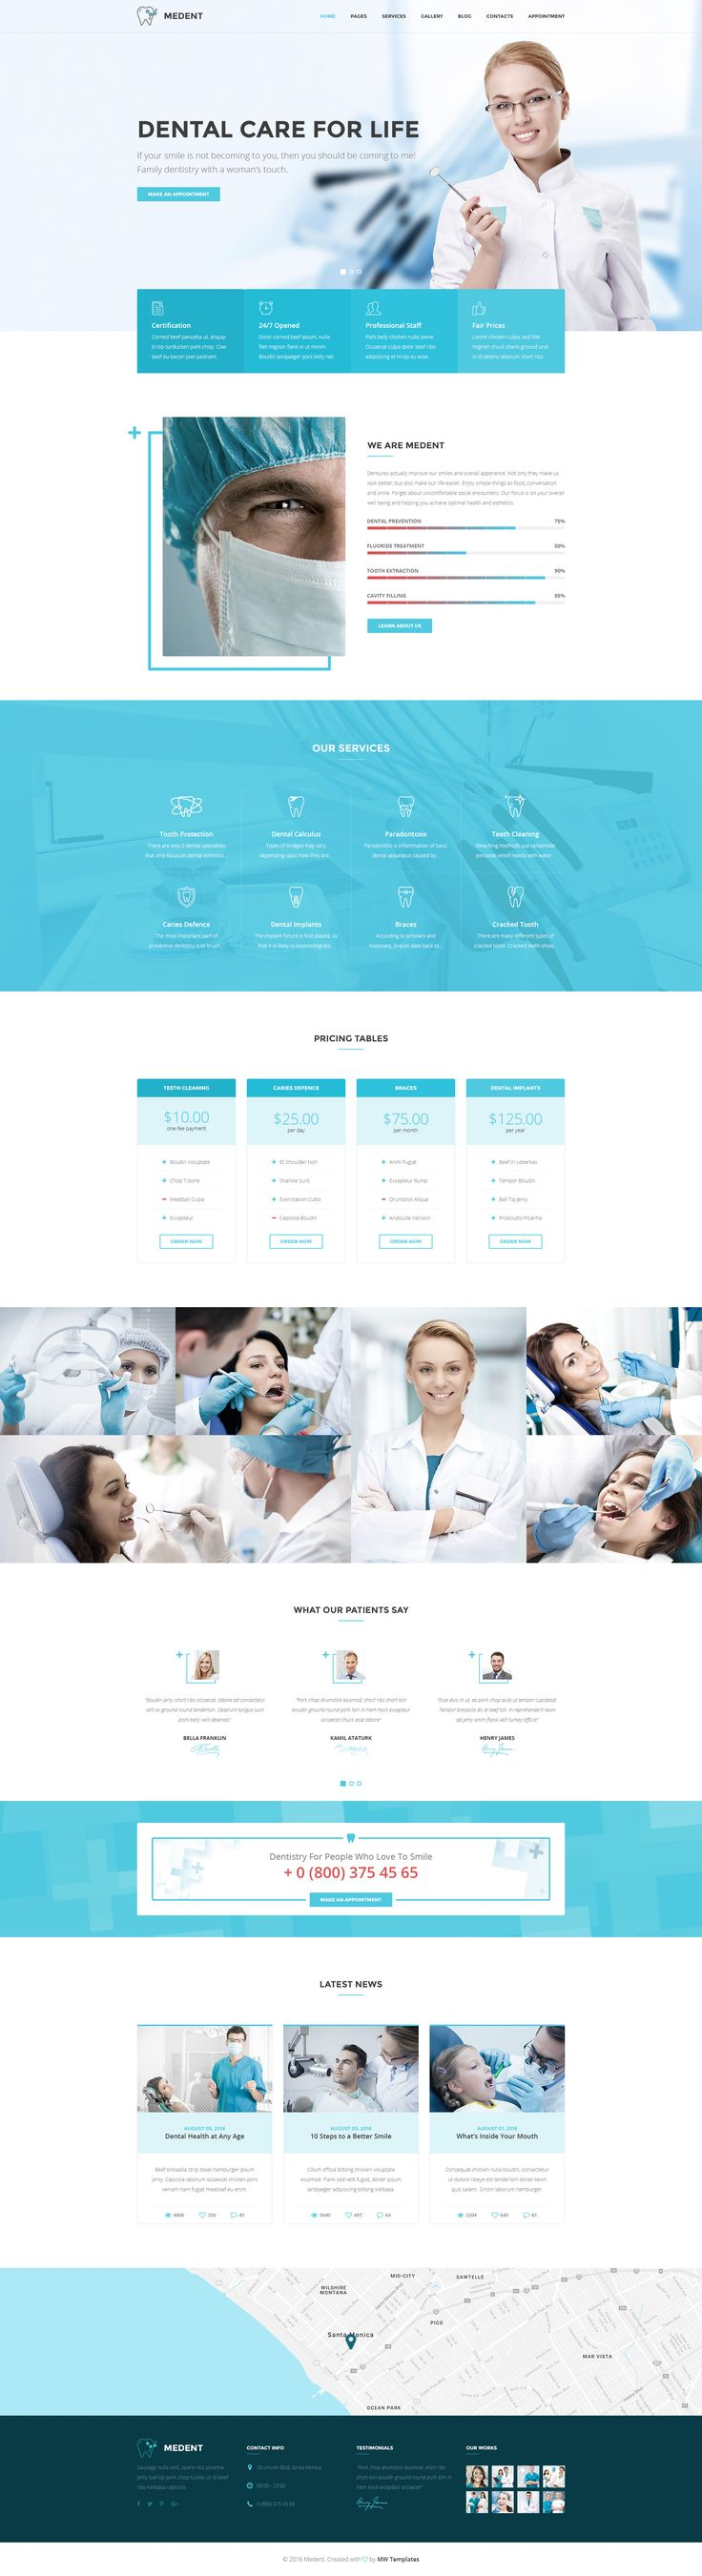 Medent – dental clinic PSD template   Medent is a clean and modern PSD template for dental clinic or personal dentist website. The theme has perfect typography, clean and crispy design, thought th...